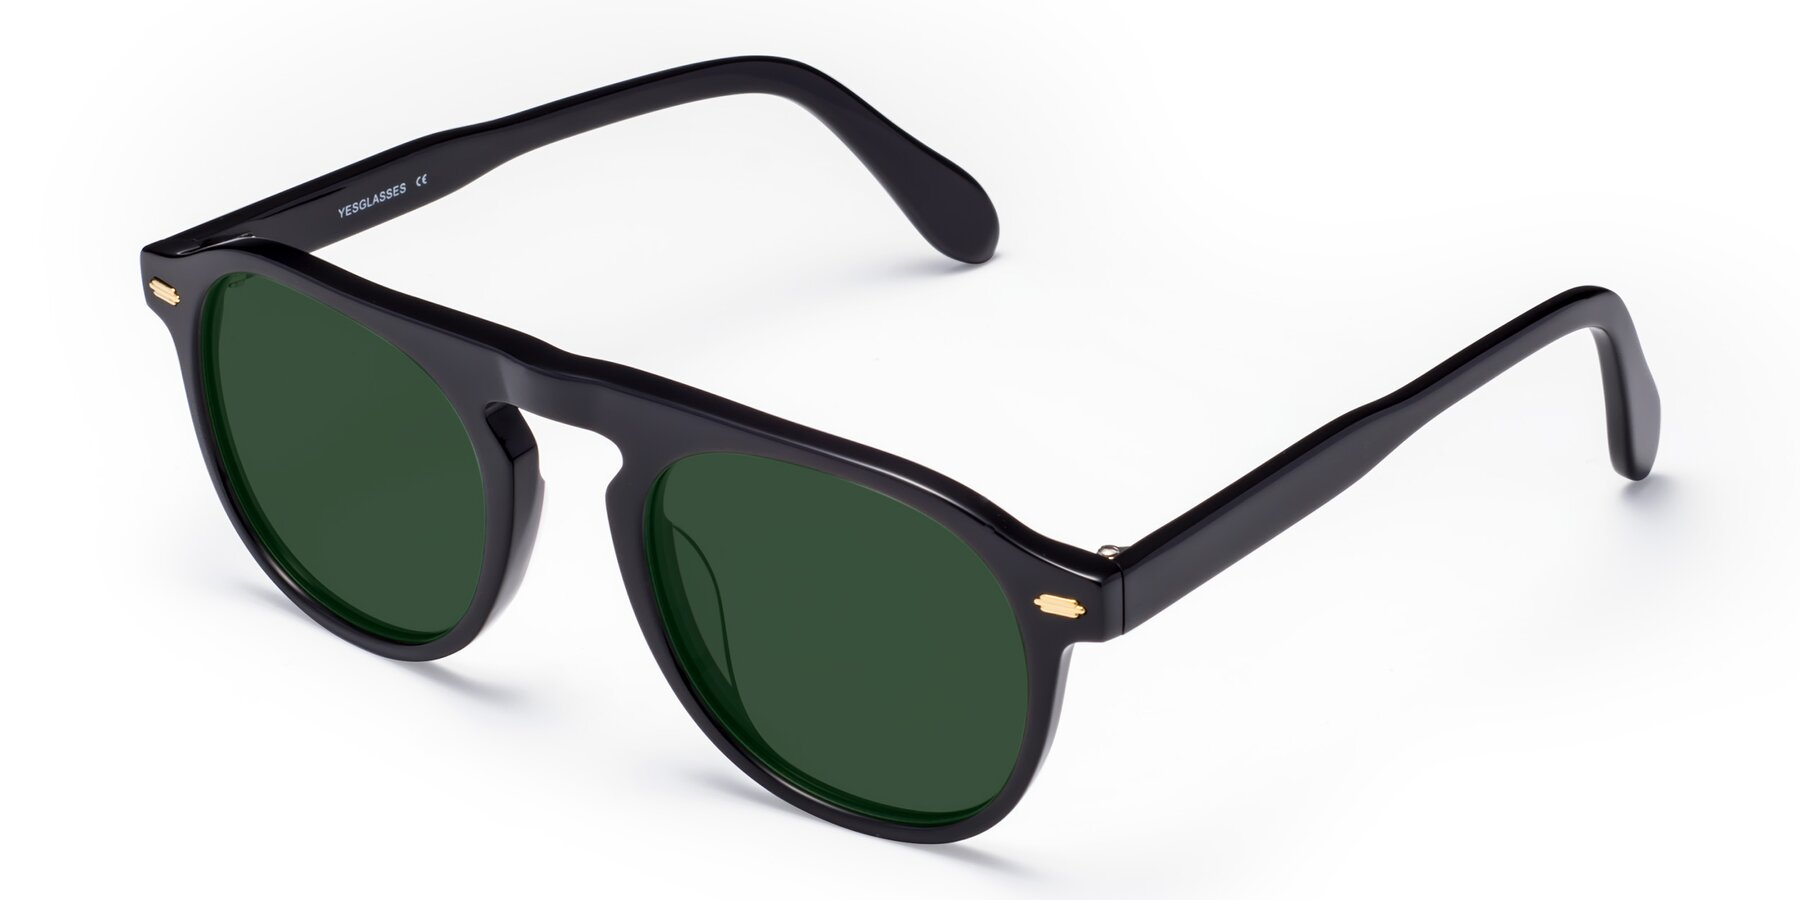 Angle of Mufasa in Black with Green Tinted Lenses